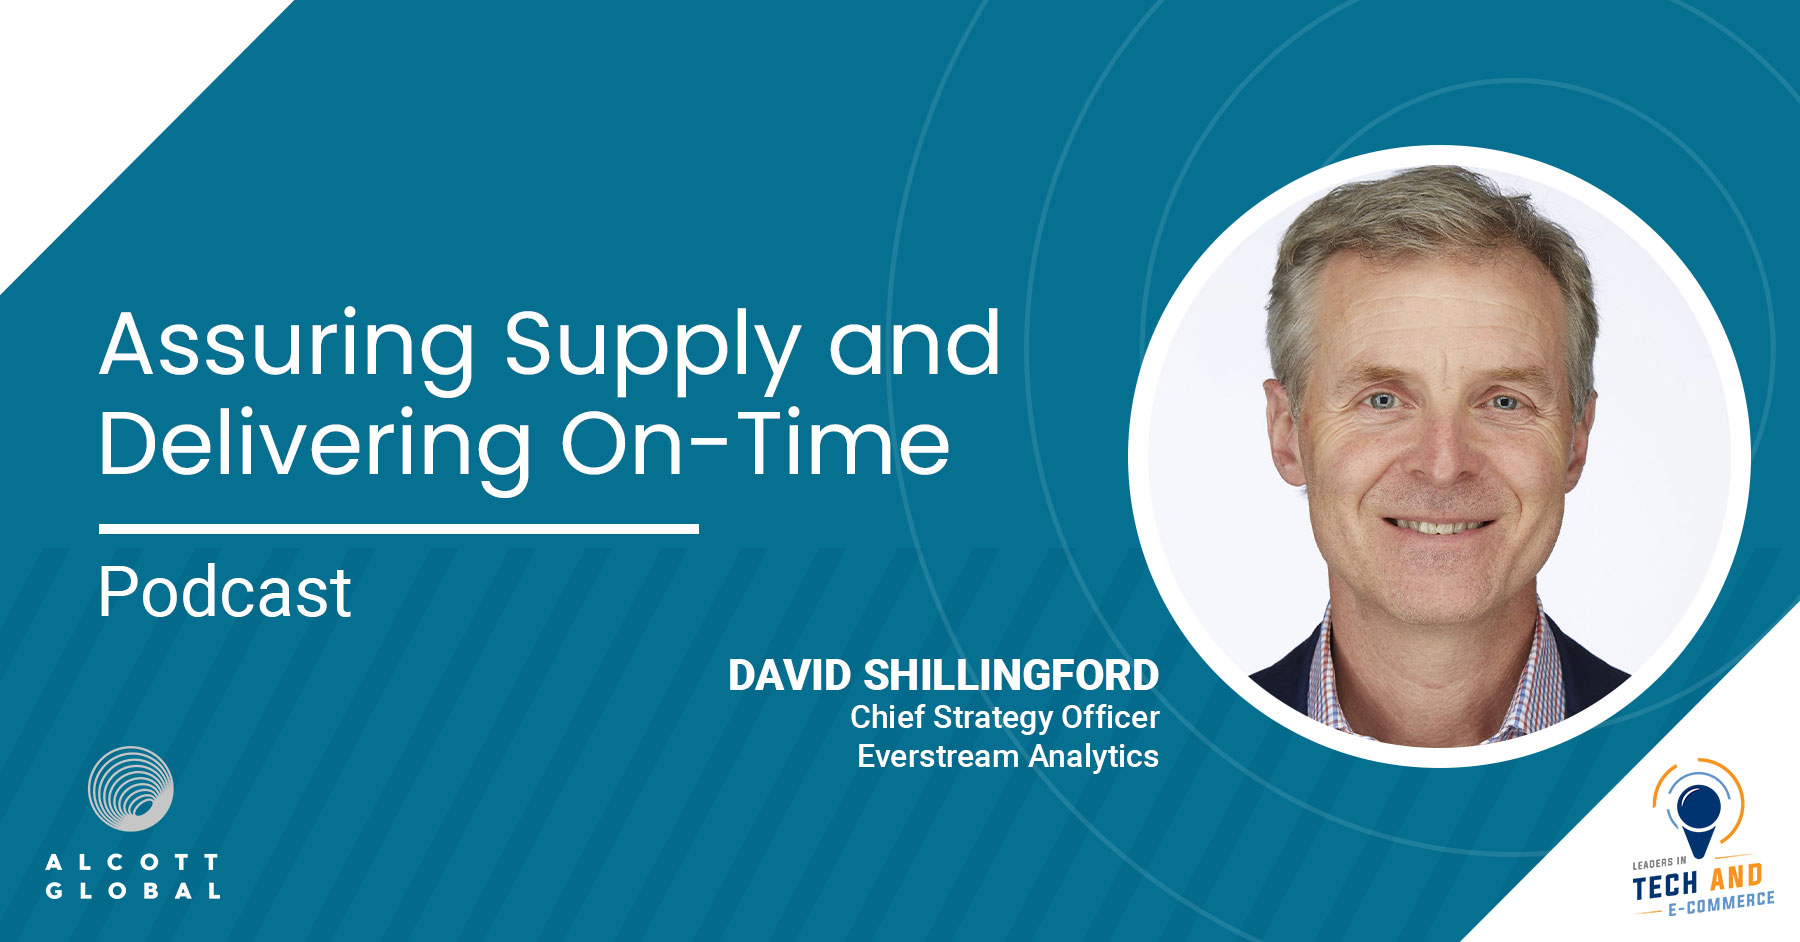 Assuring Supply and Delivering On-Time with David Shillingford, Chief Strategy Officer of Everstream Analytics Featured Image